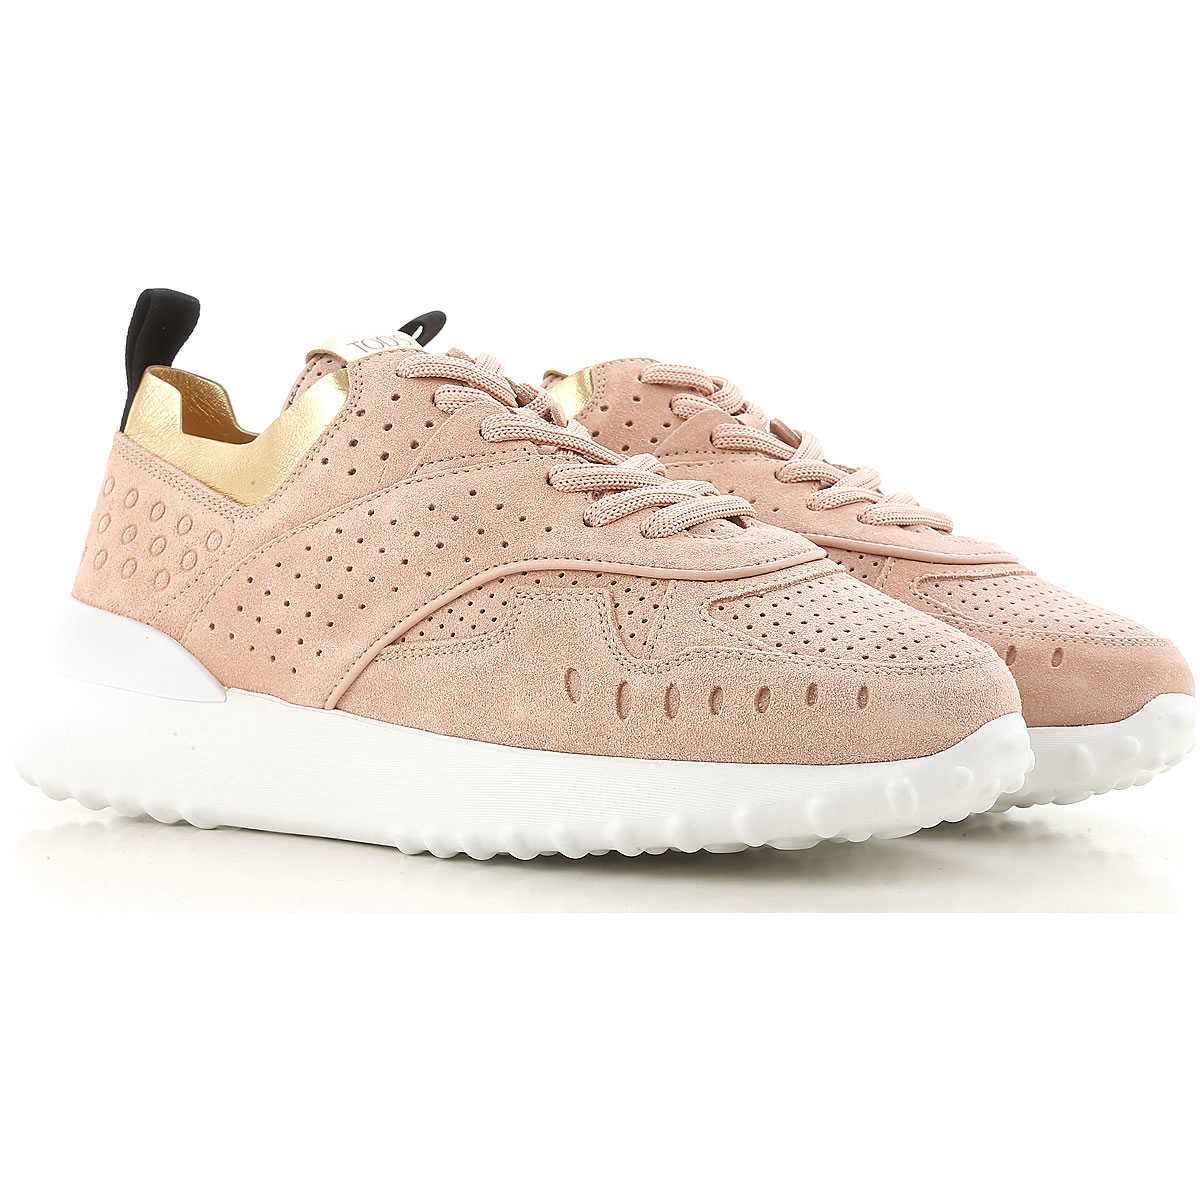 Tods Sneakers for Women, Rose, Suede